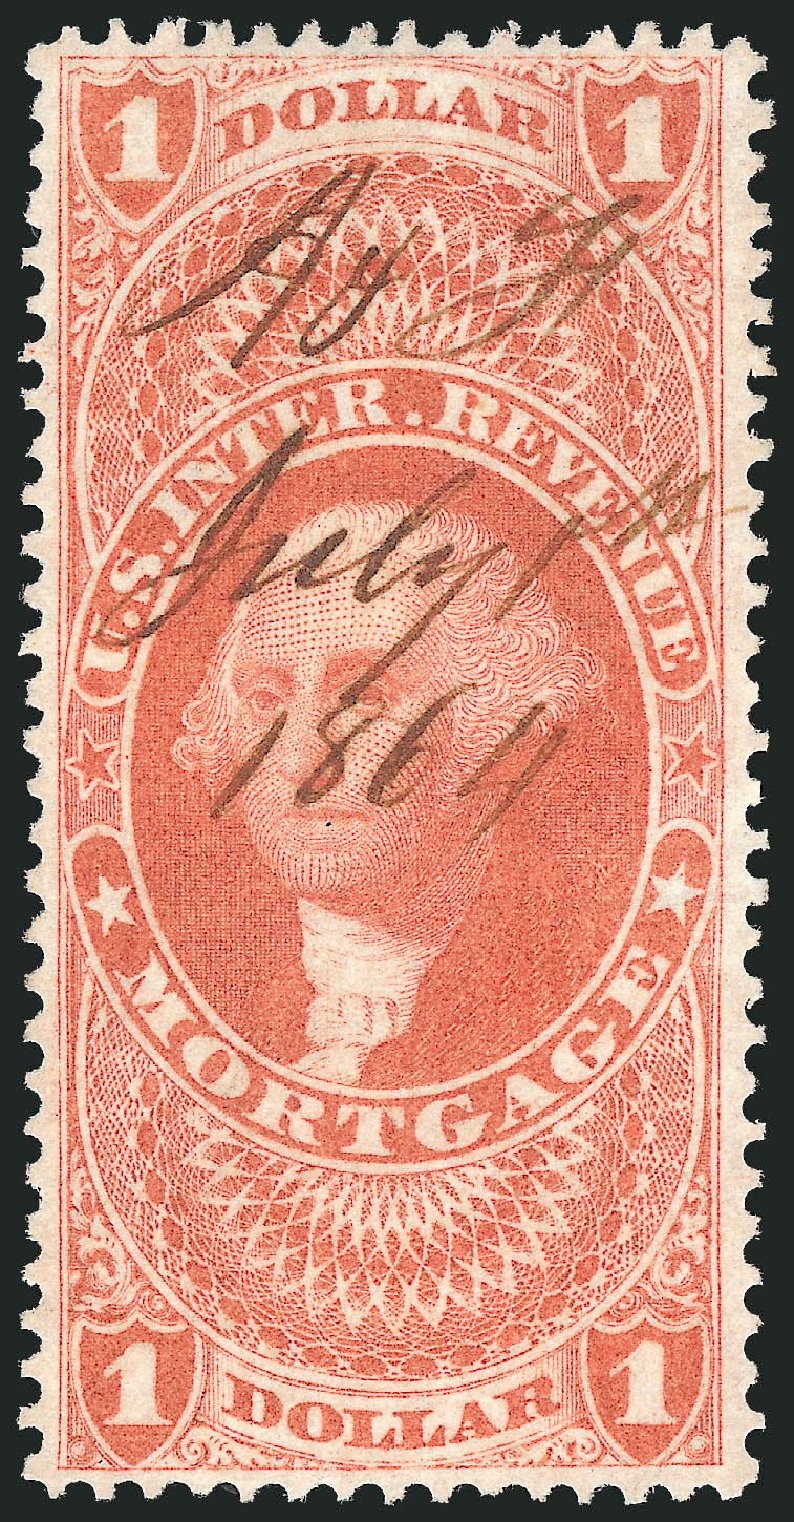 US Stamps Value Scott Catalogue R73 - 1862 US$1.00 Revenue Mortgage. Robert Siegel Auction Galleries, Nov 2011, Sale 1015, Lot 70